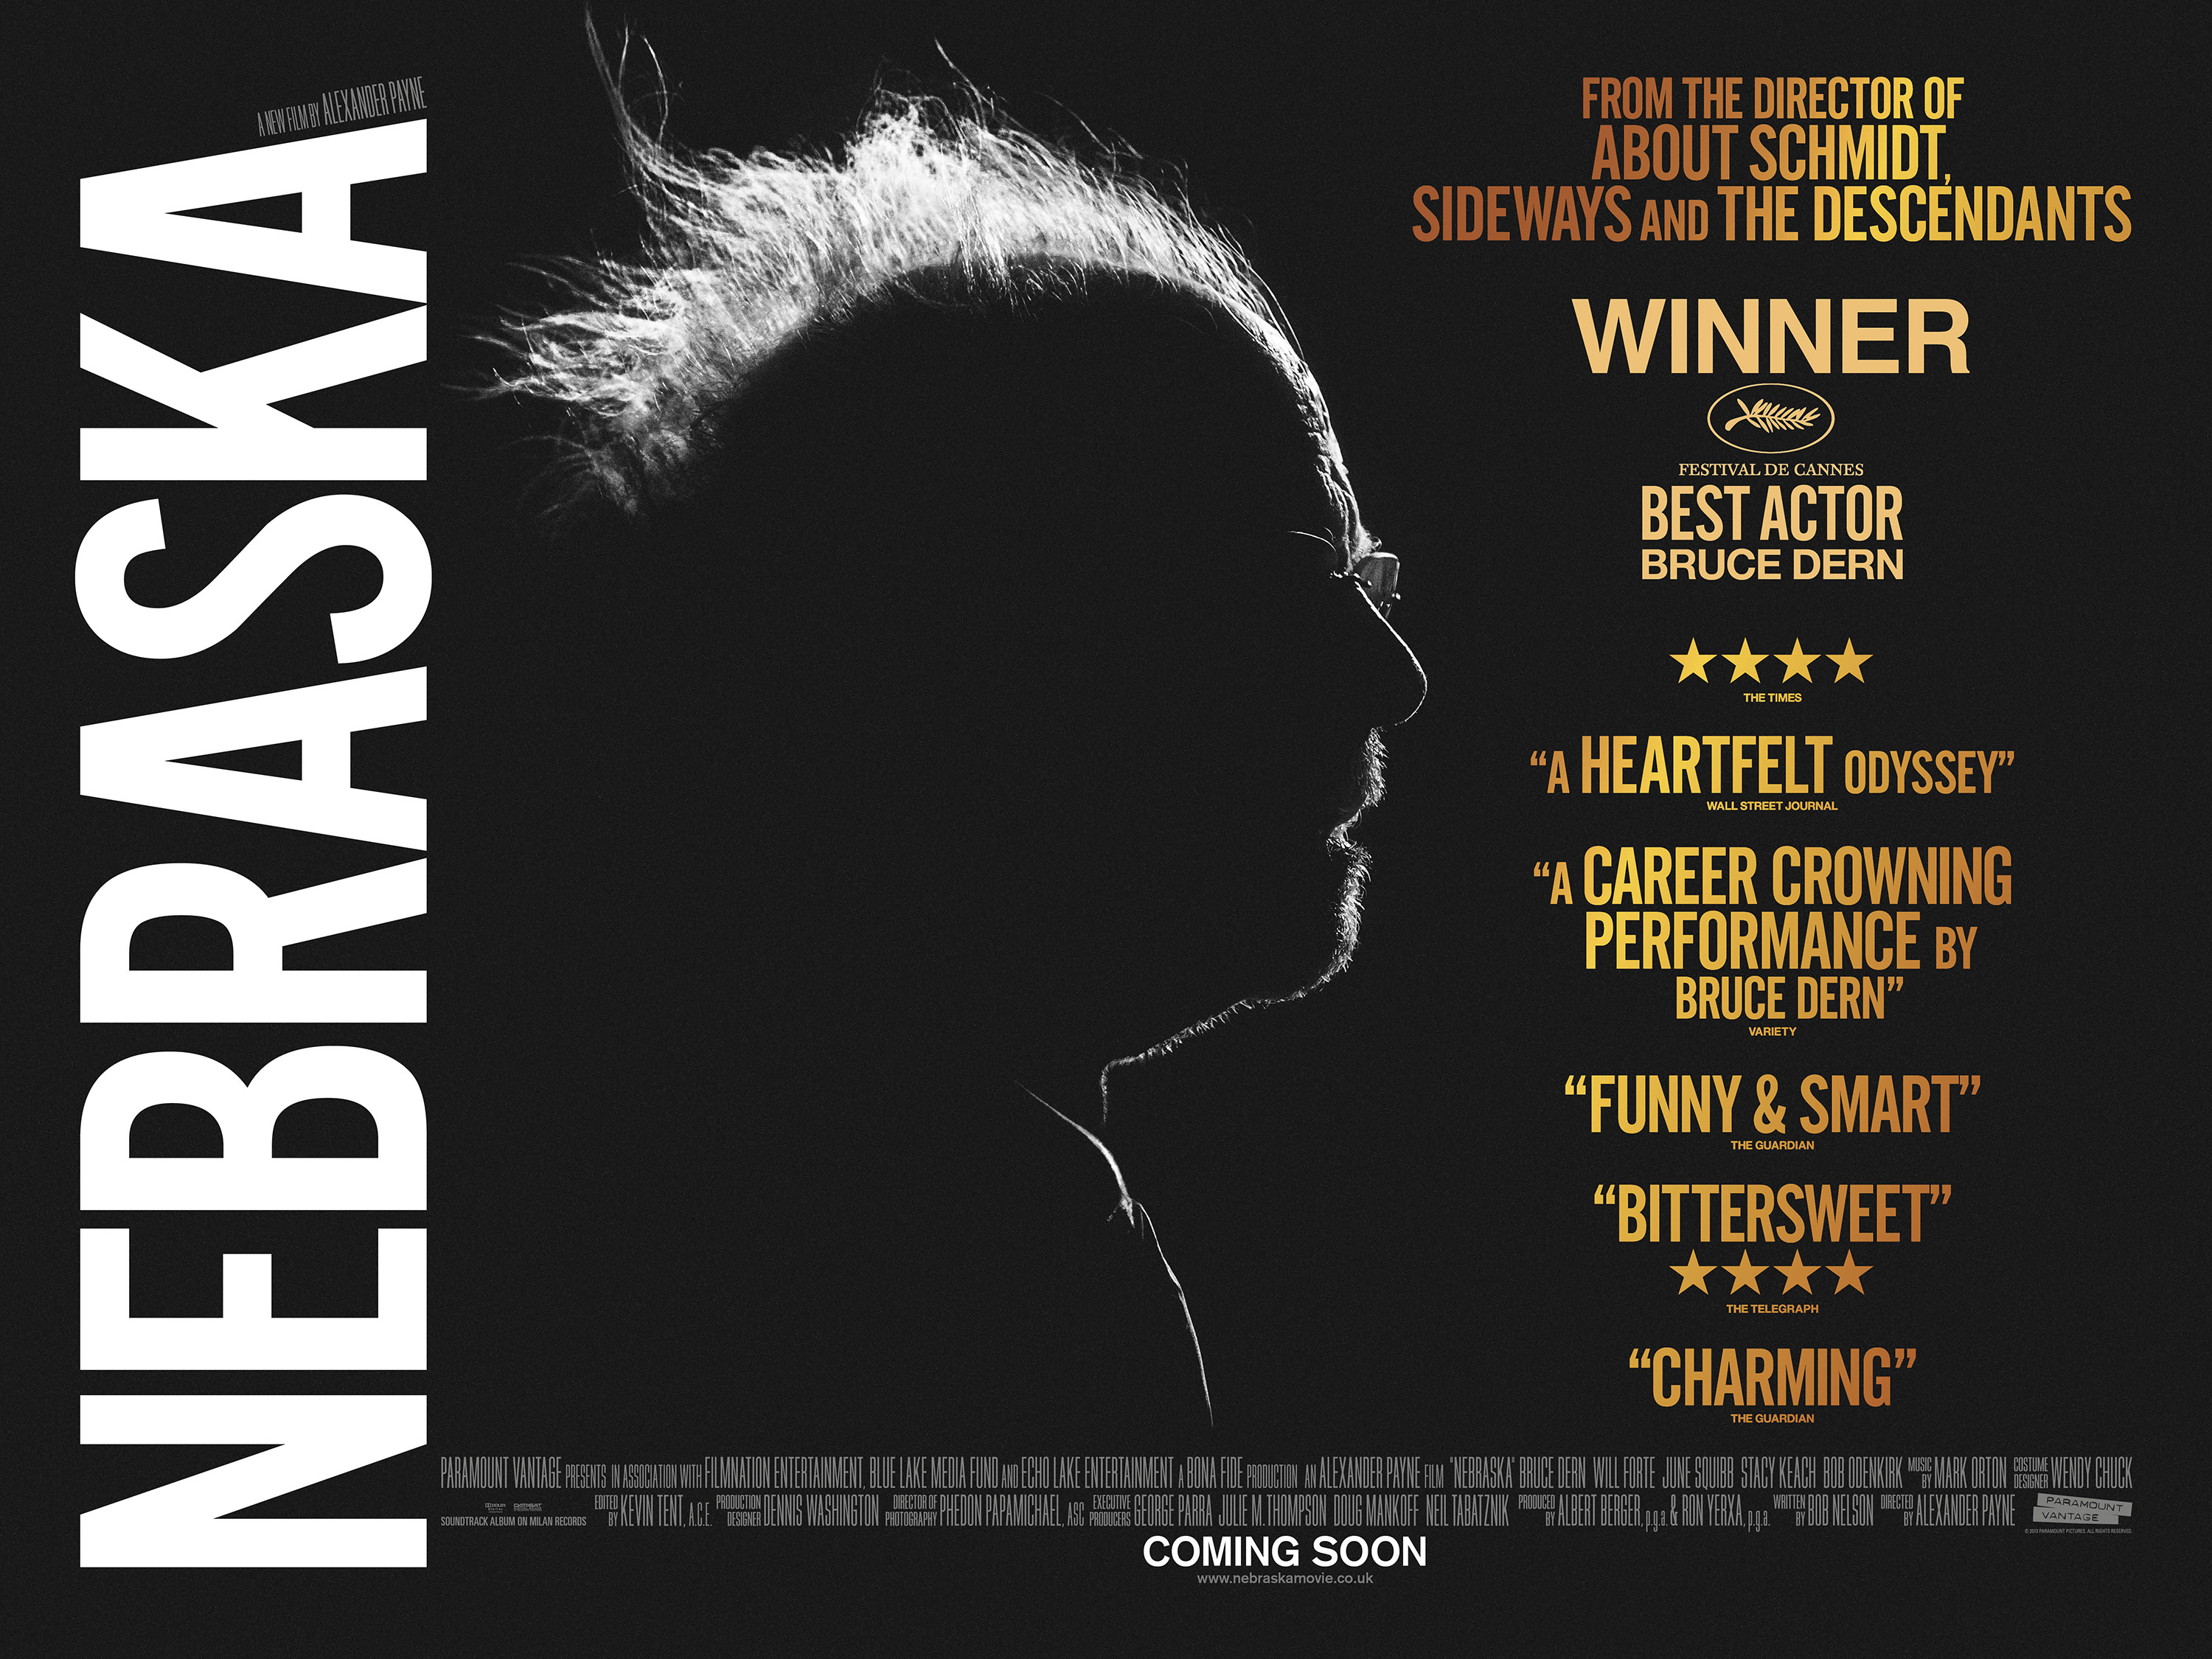 Nebraska (2013) — A Great-Movie Essay